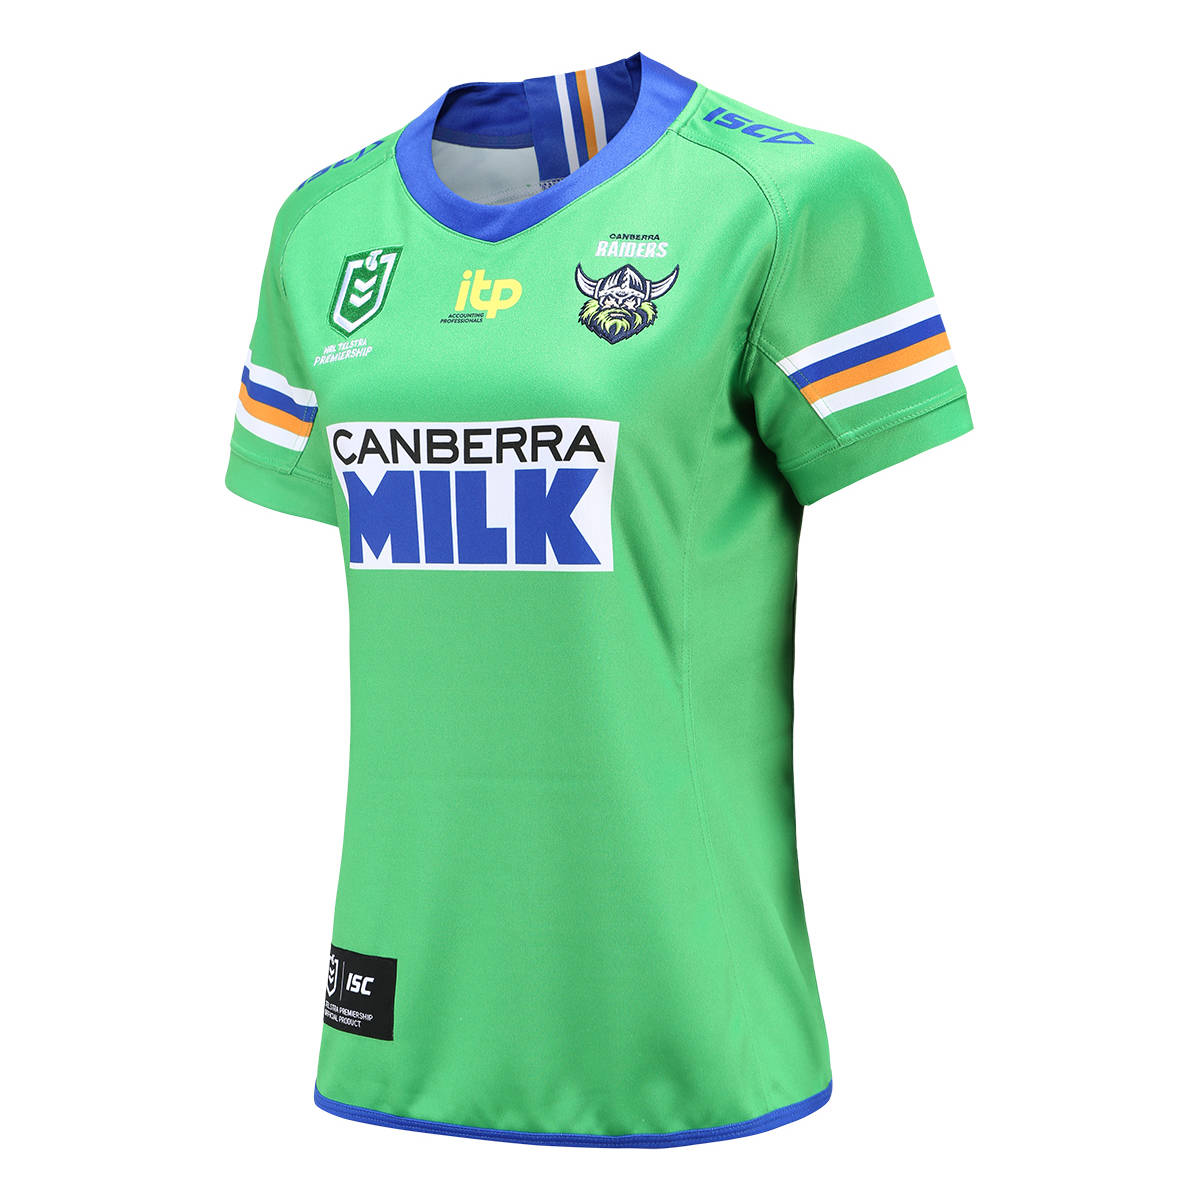 2021 Ladies Heritage Jersey1